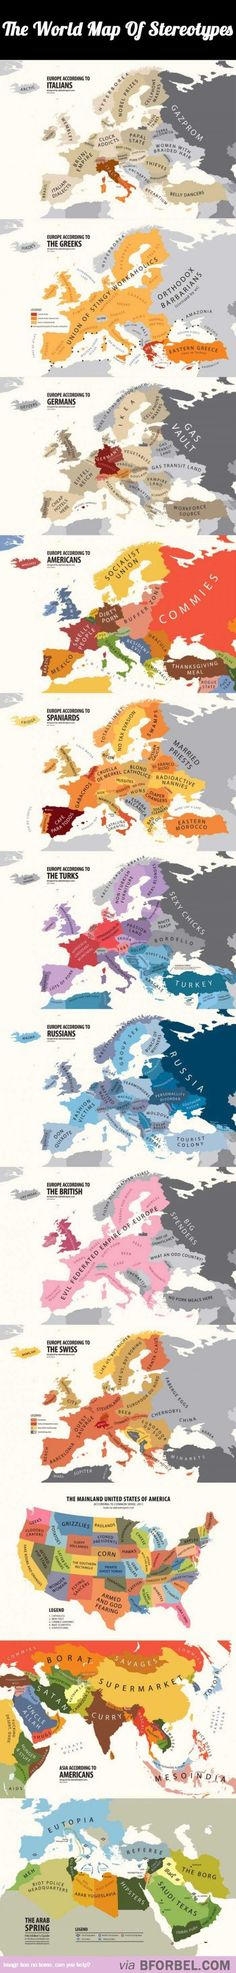 The World Map Of Stereotypes…